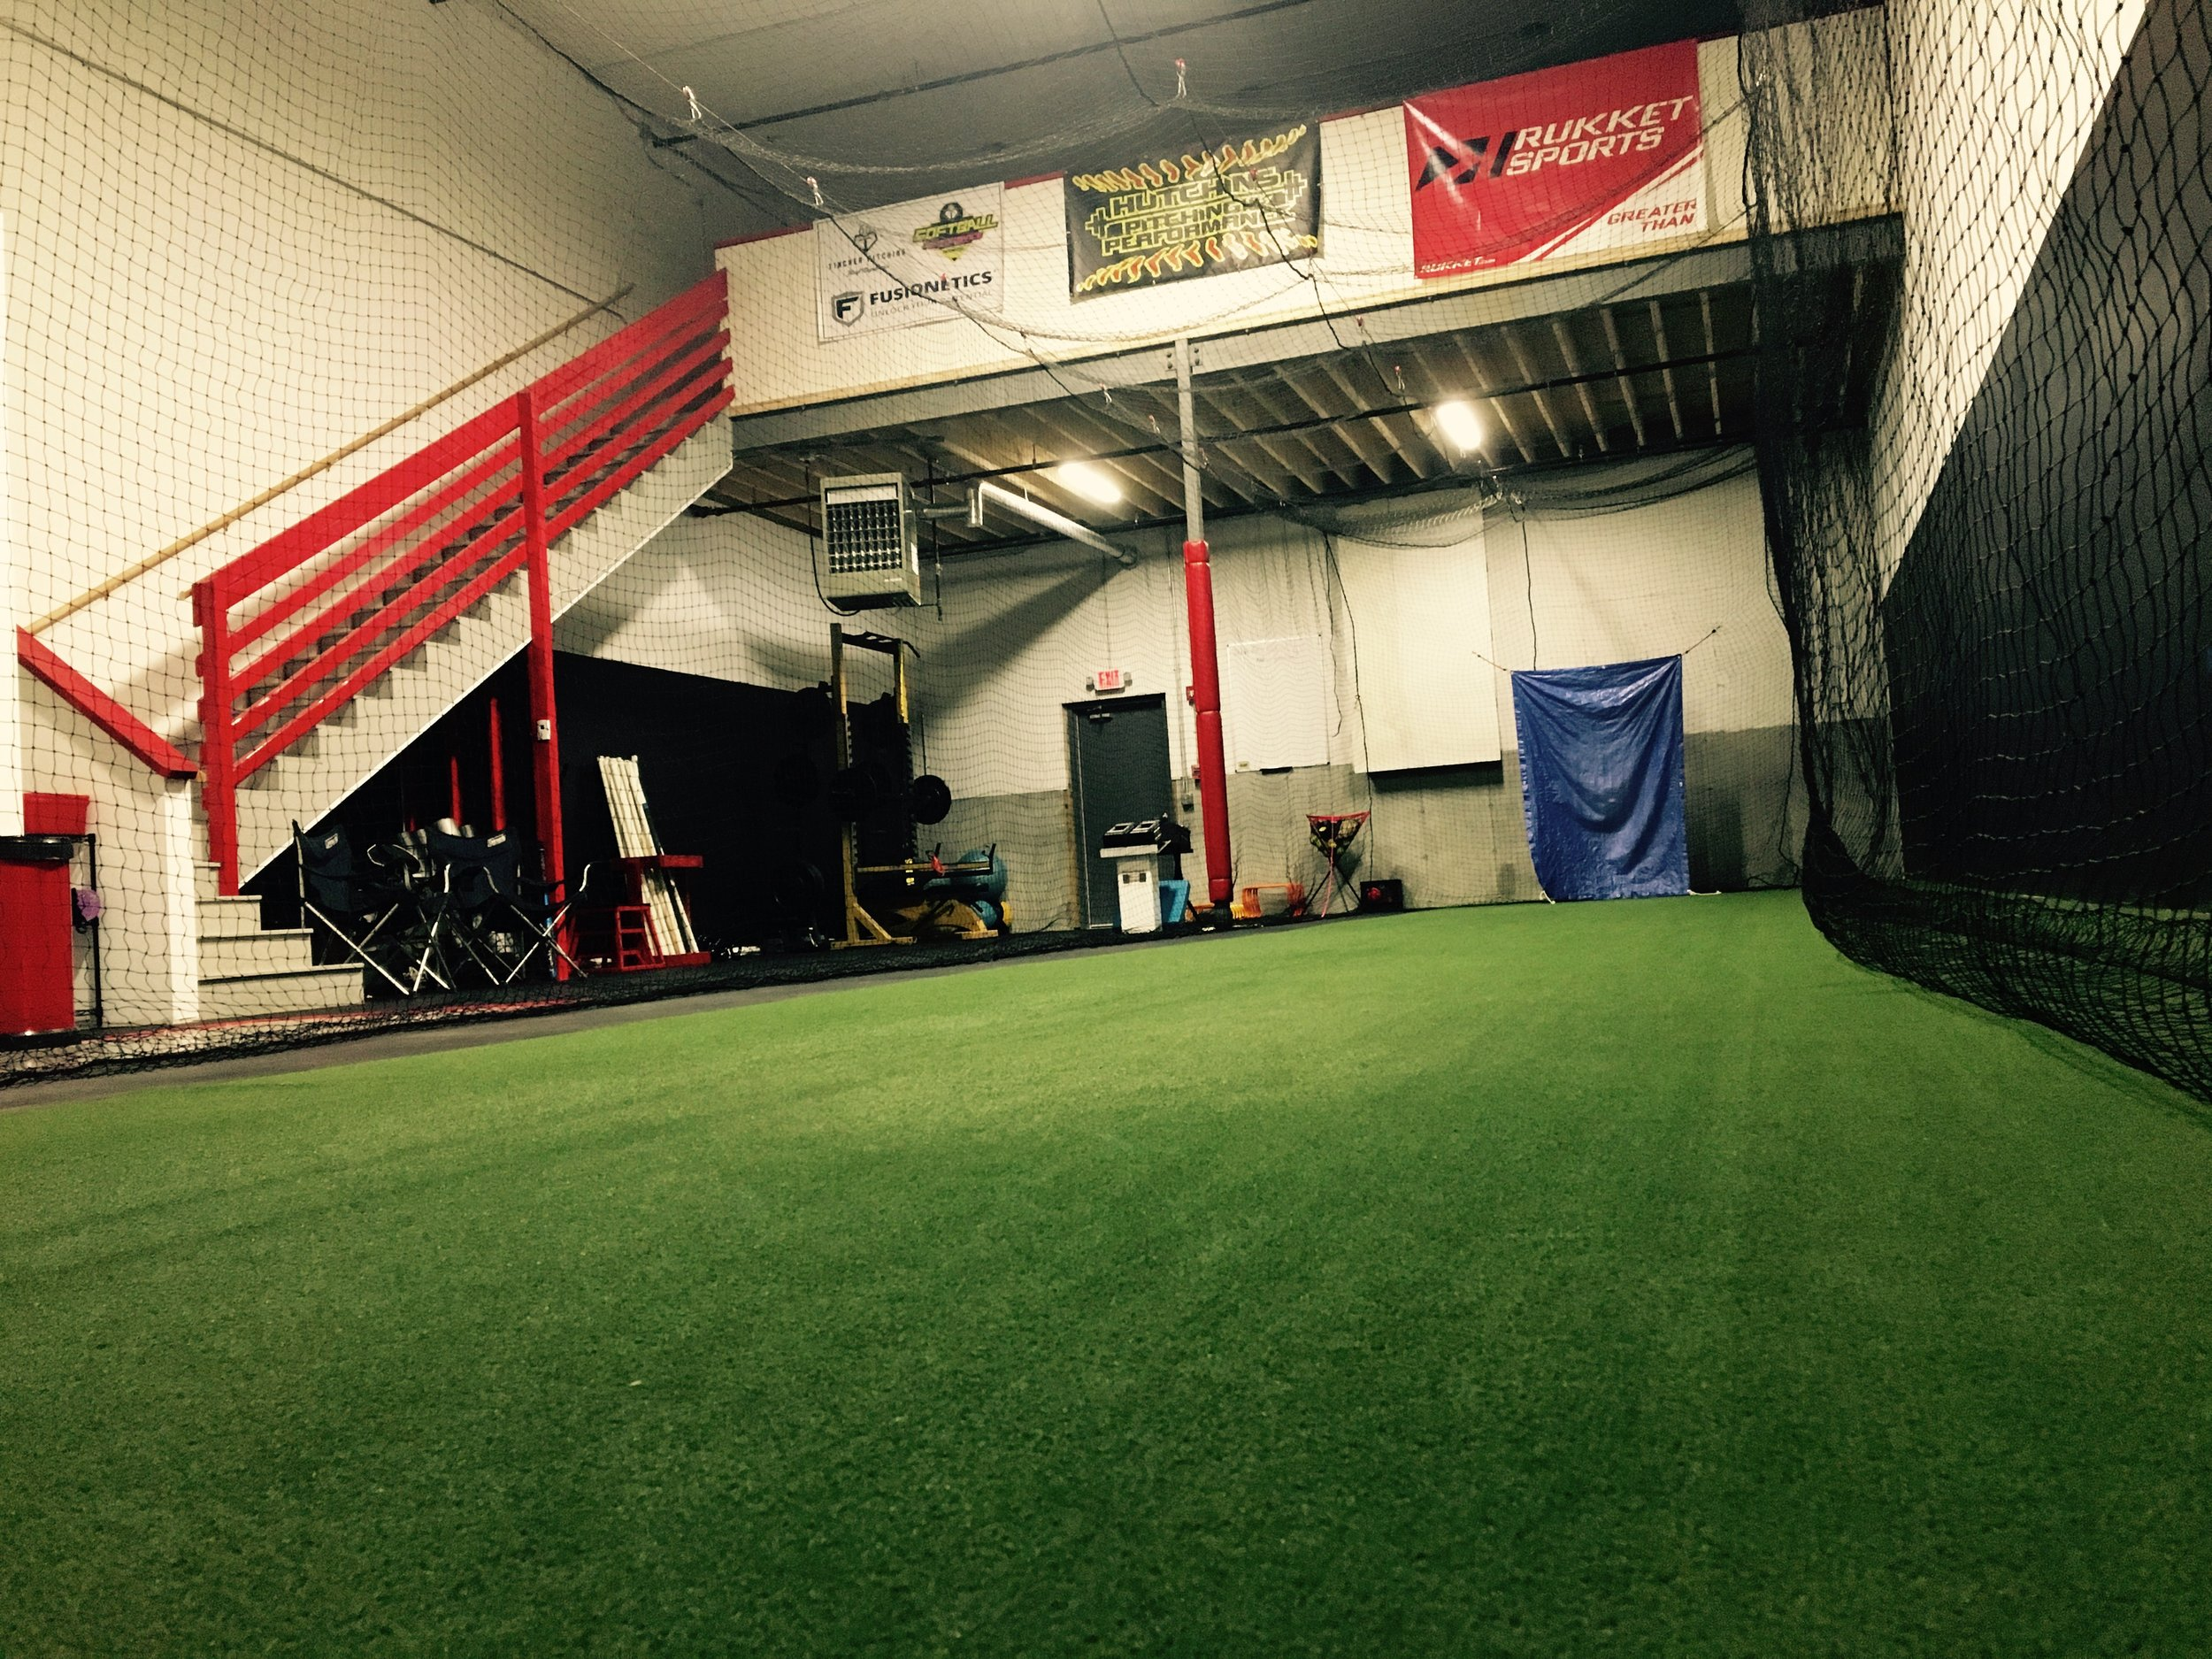 Don't forget!!HPP offers private hitting instruction! Keep us in mind when the weather starts to force you indoors. Our cage is also available for 1/2 hour and 1 hour blocks if you're looking to get reps in. Check out the